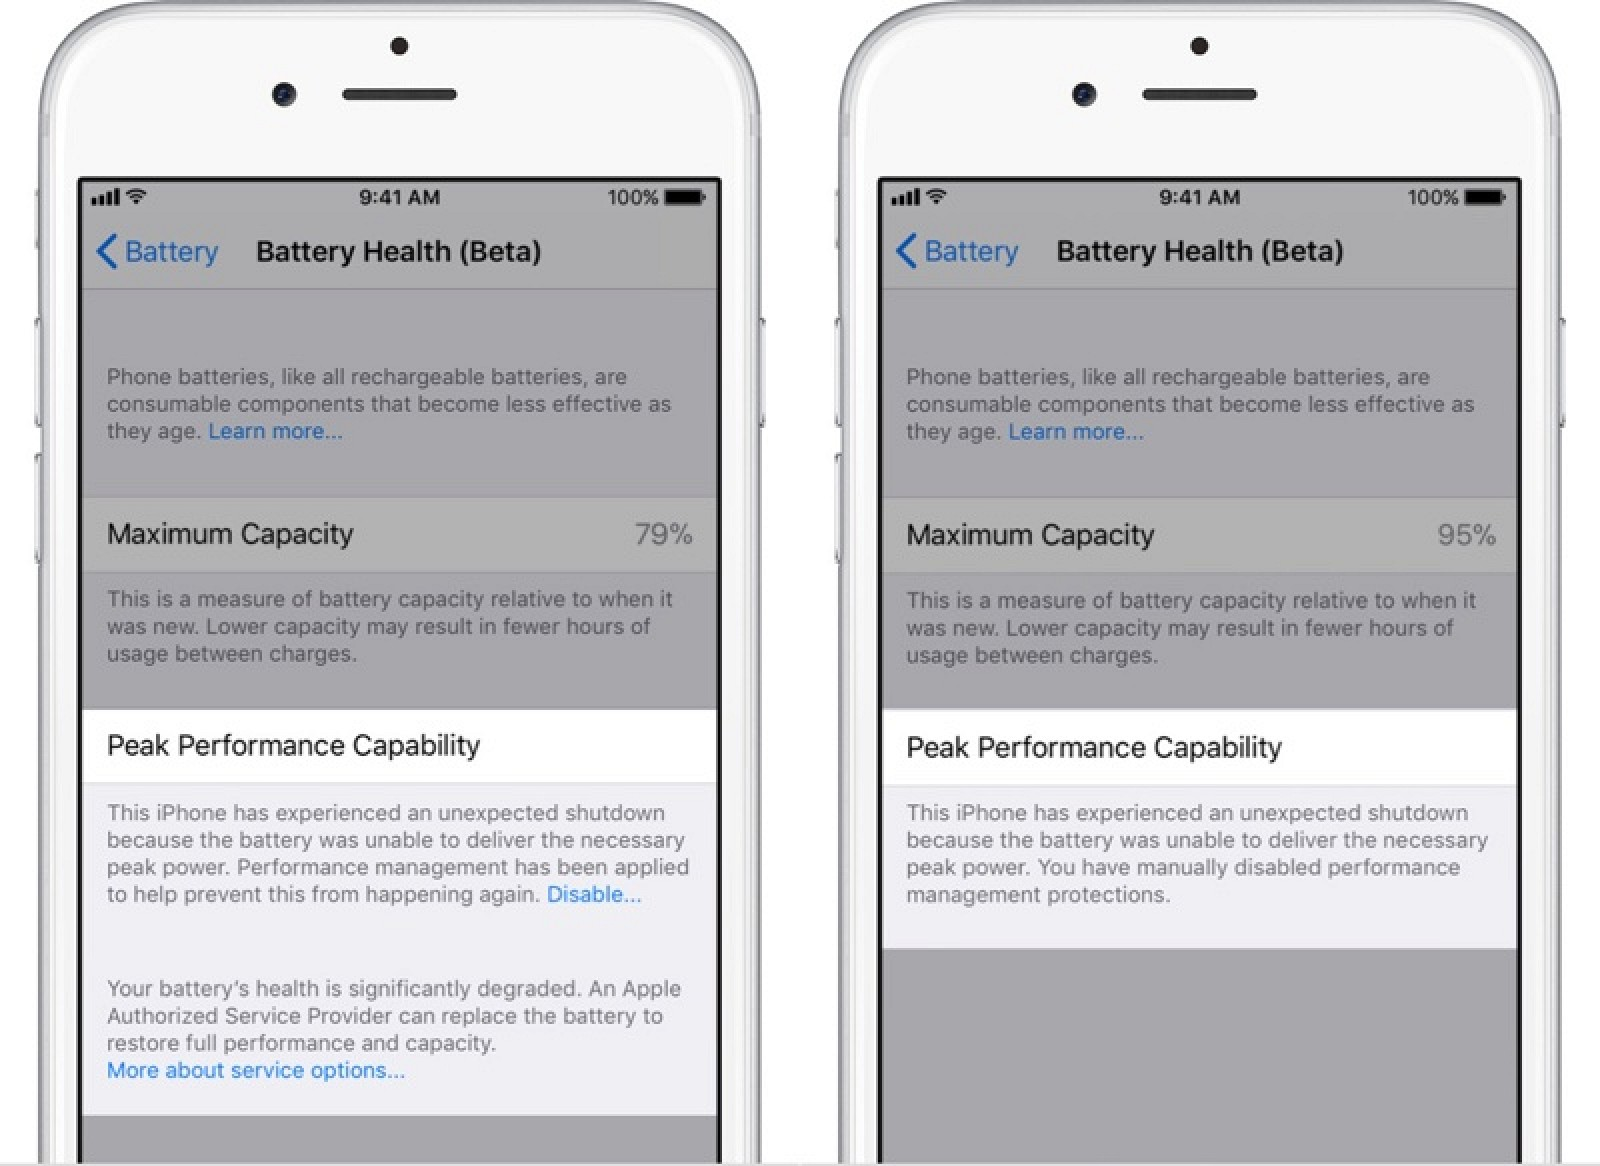 How To Disable Apples Performance Management Features In